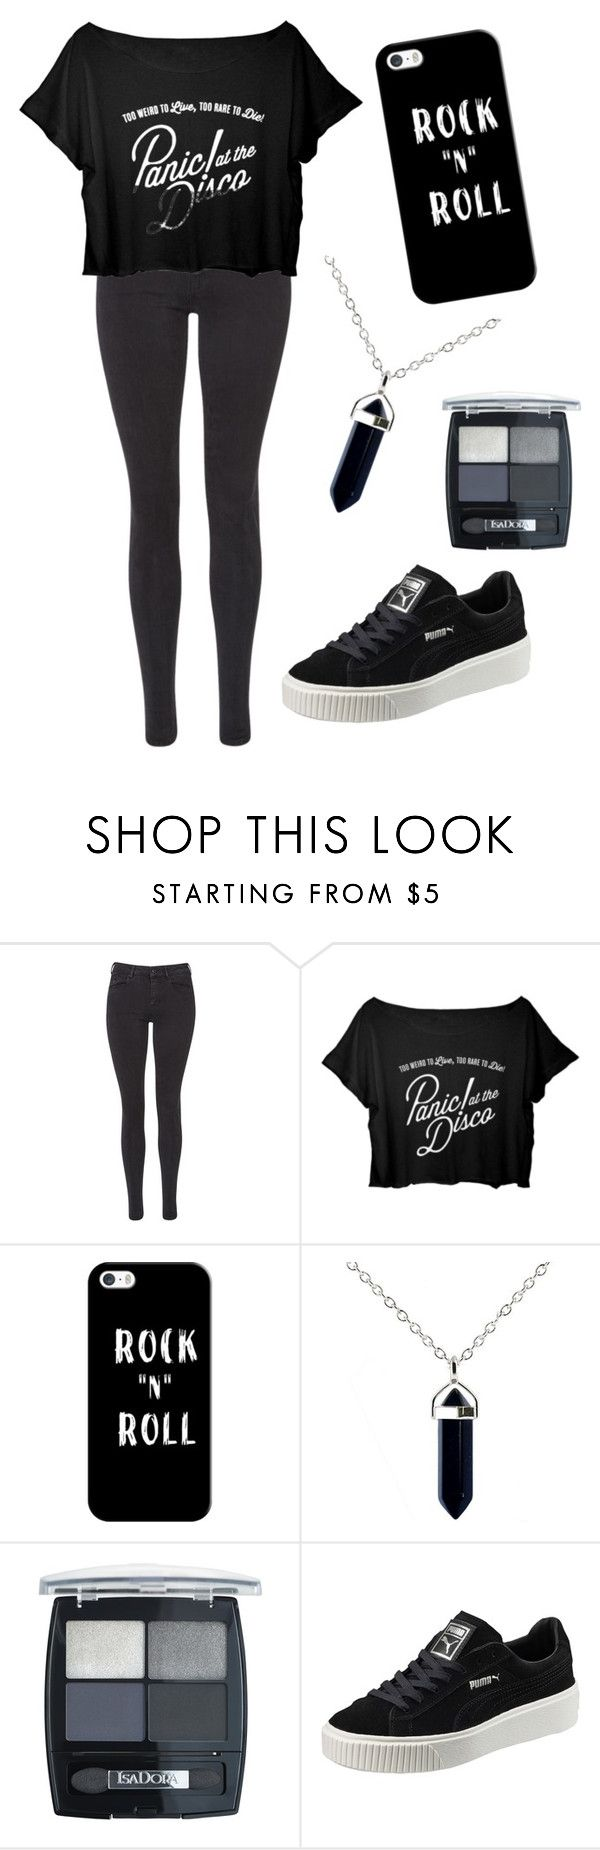 """Rock"" by electraz on Polyvore featuring Maison Scotch, Casetify, Isadora and Puma"